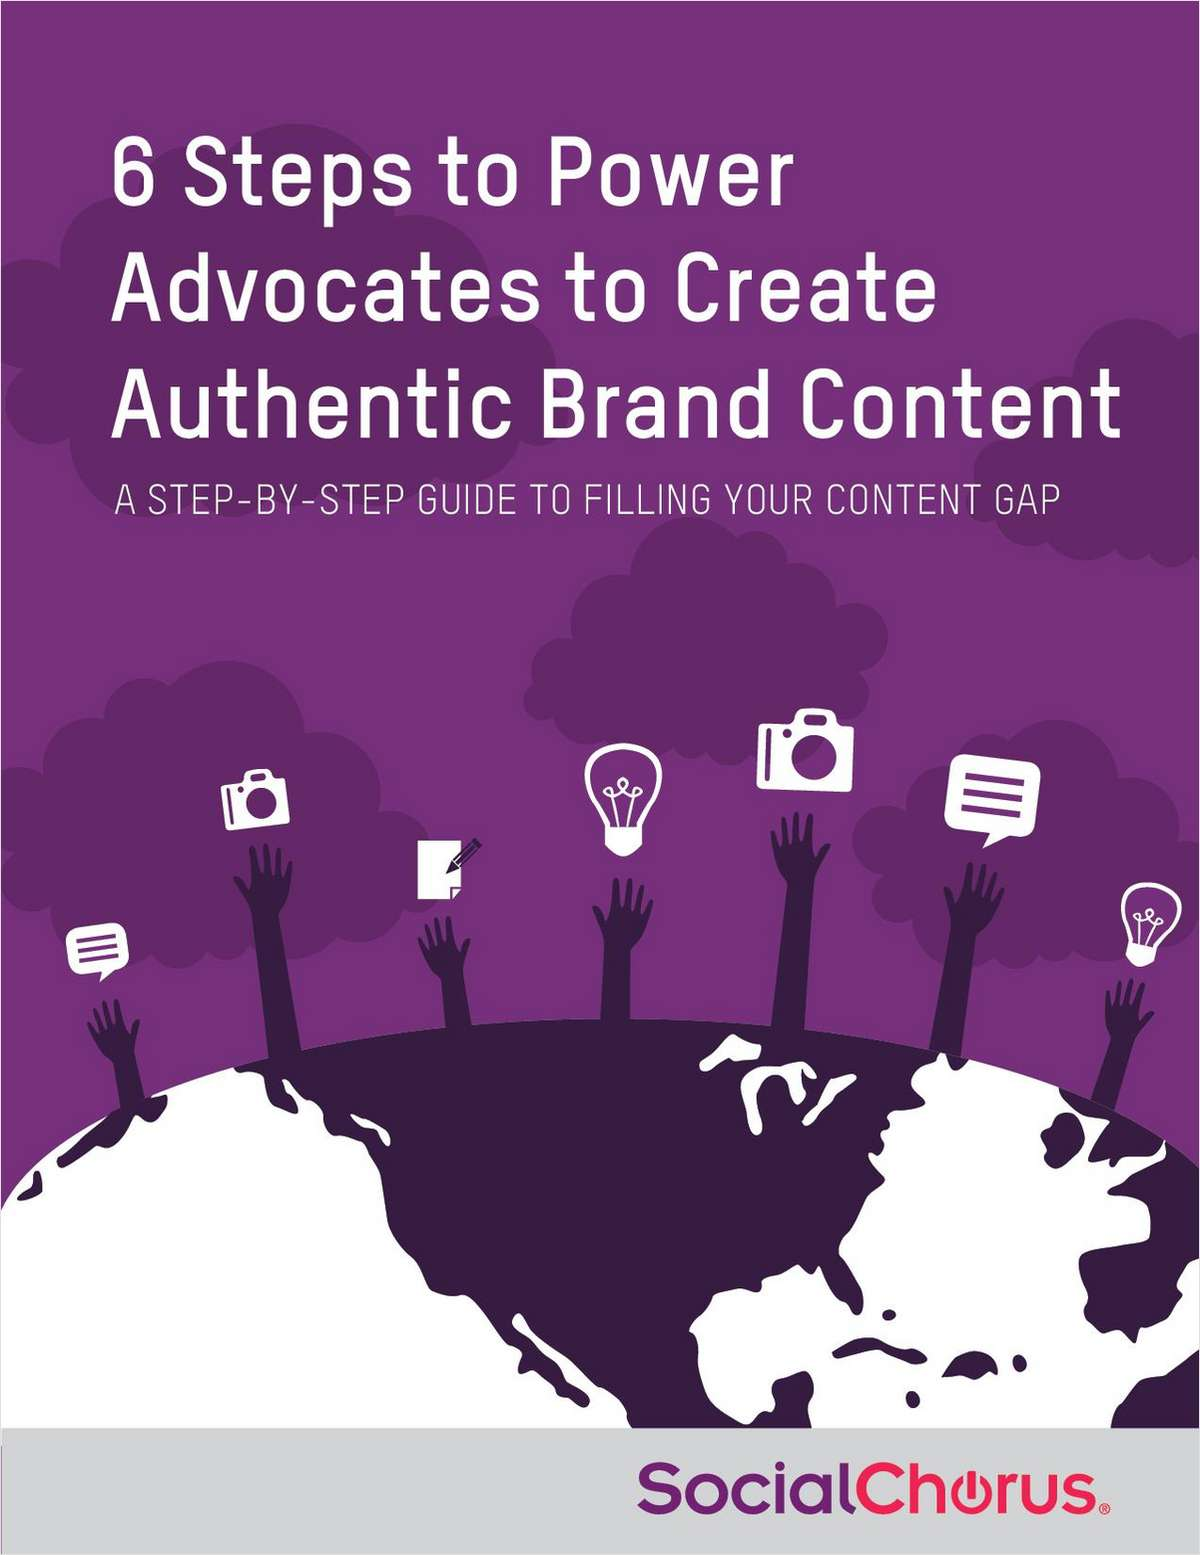 6 Steps to Power Advocates to Create Authentic Brand Content